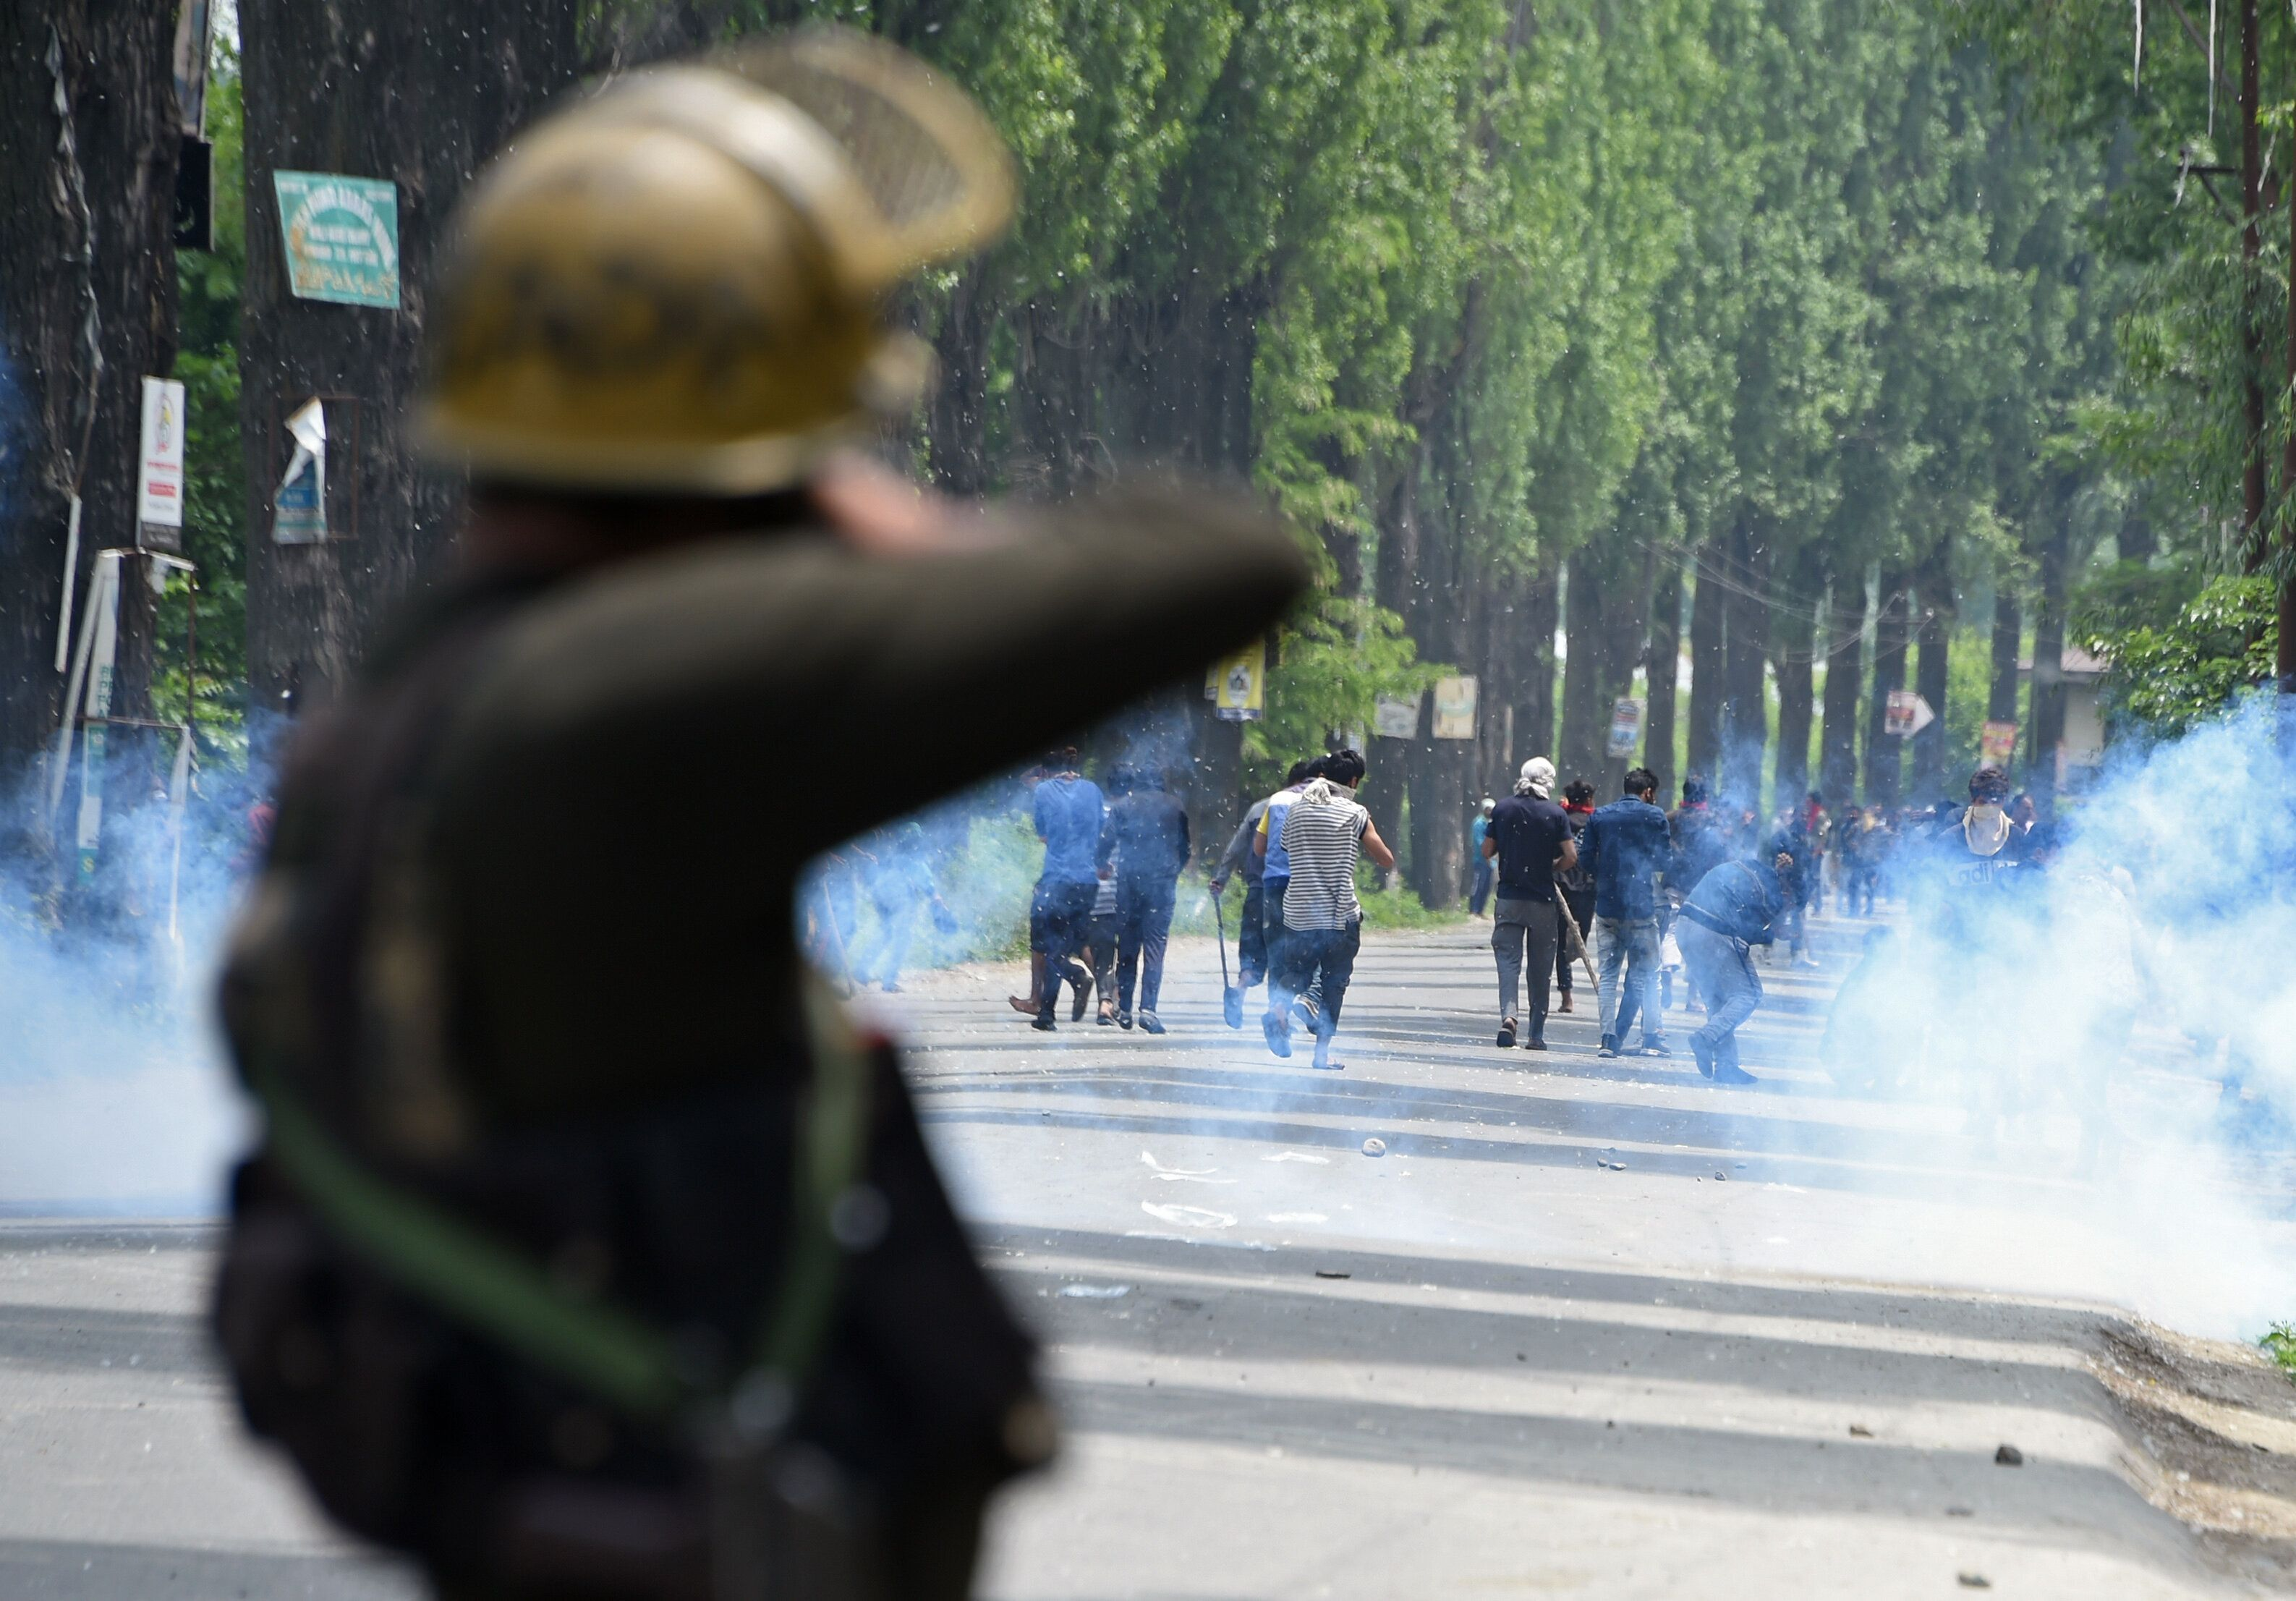 Kashmir: Massive Protests Over Rape Of 3-Year-Old, At Least 12